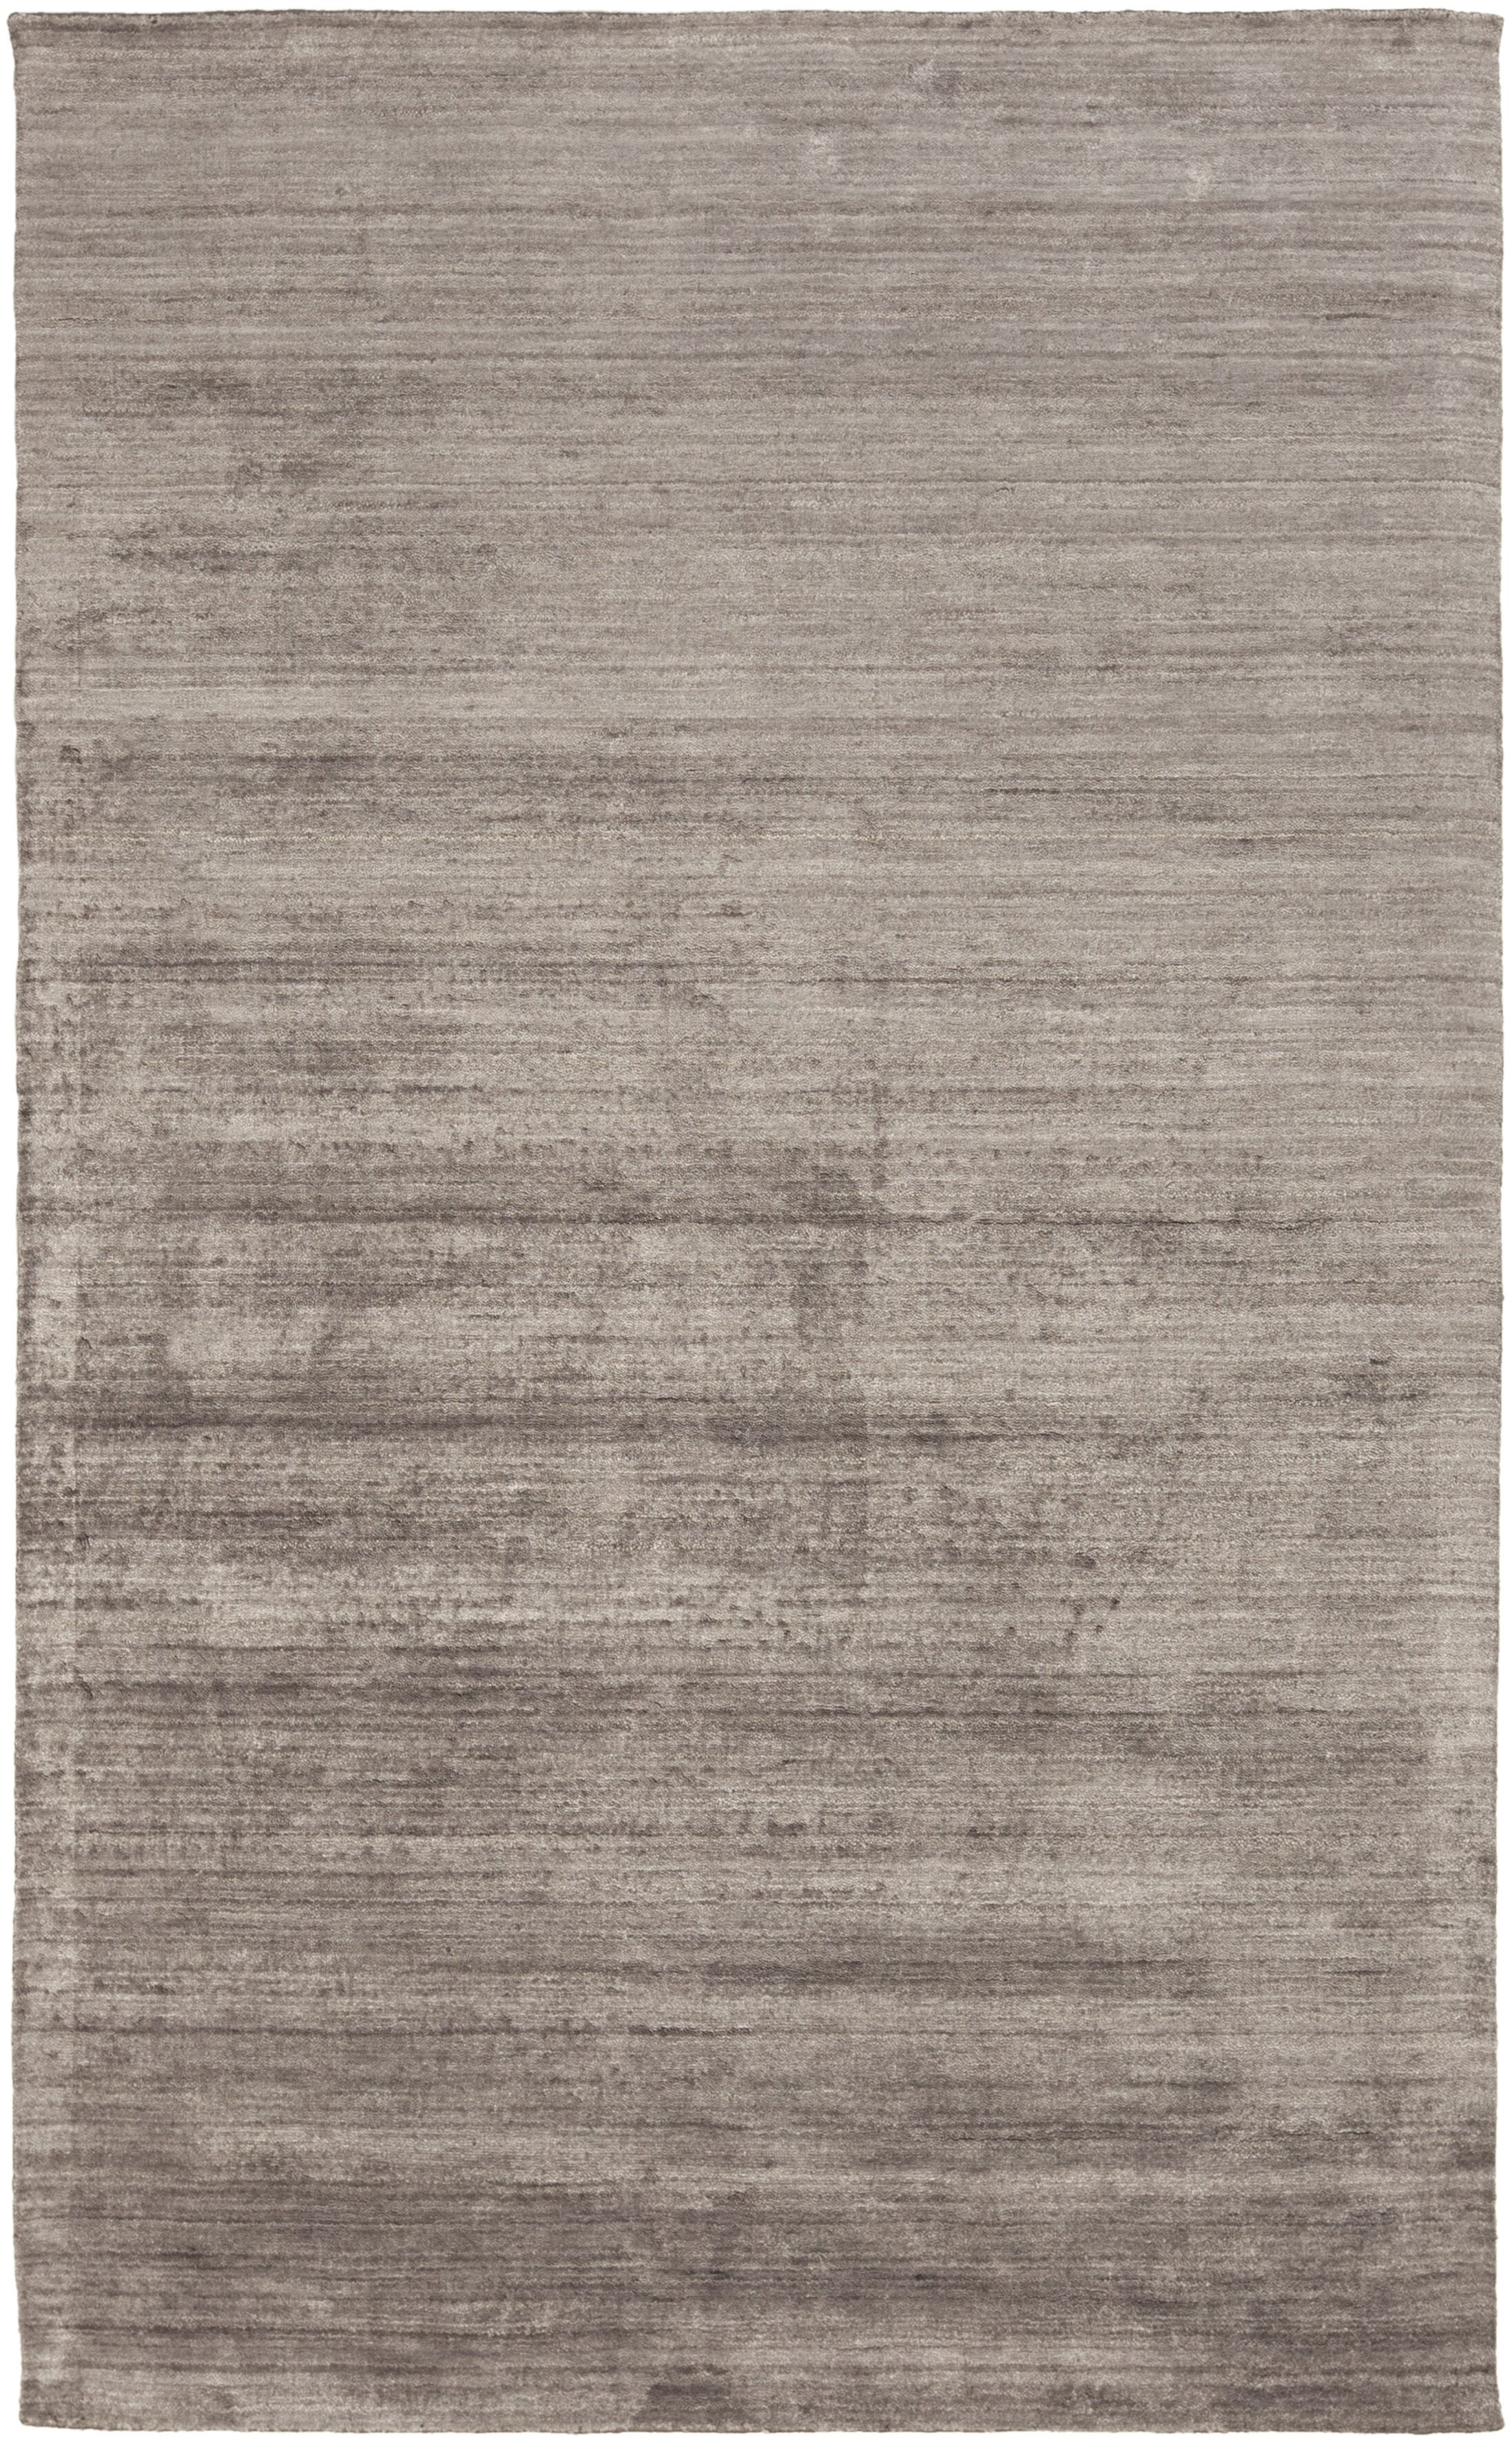 Oxendine Gray Area Rug Rug Size: Rectangle 5' x 8'